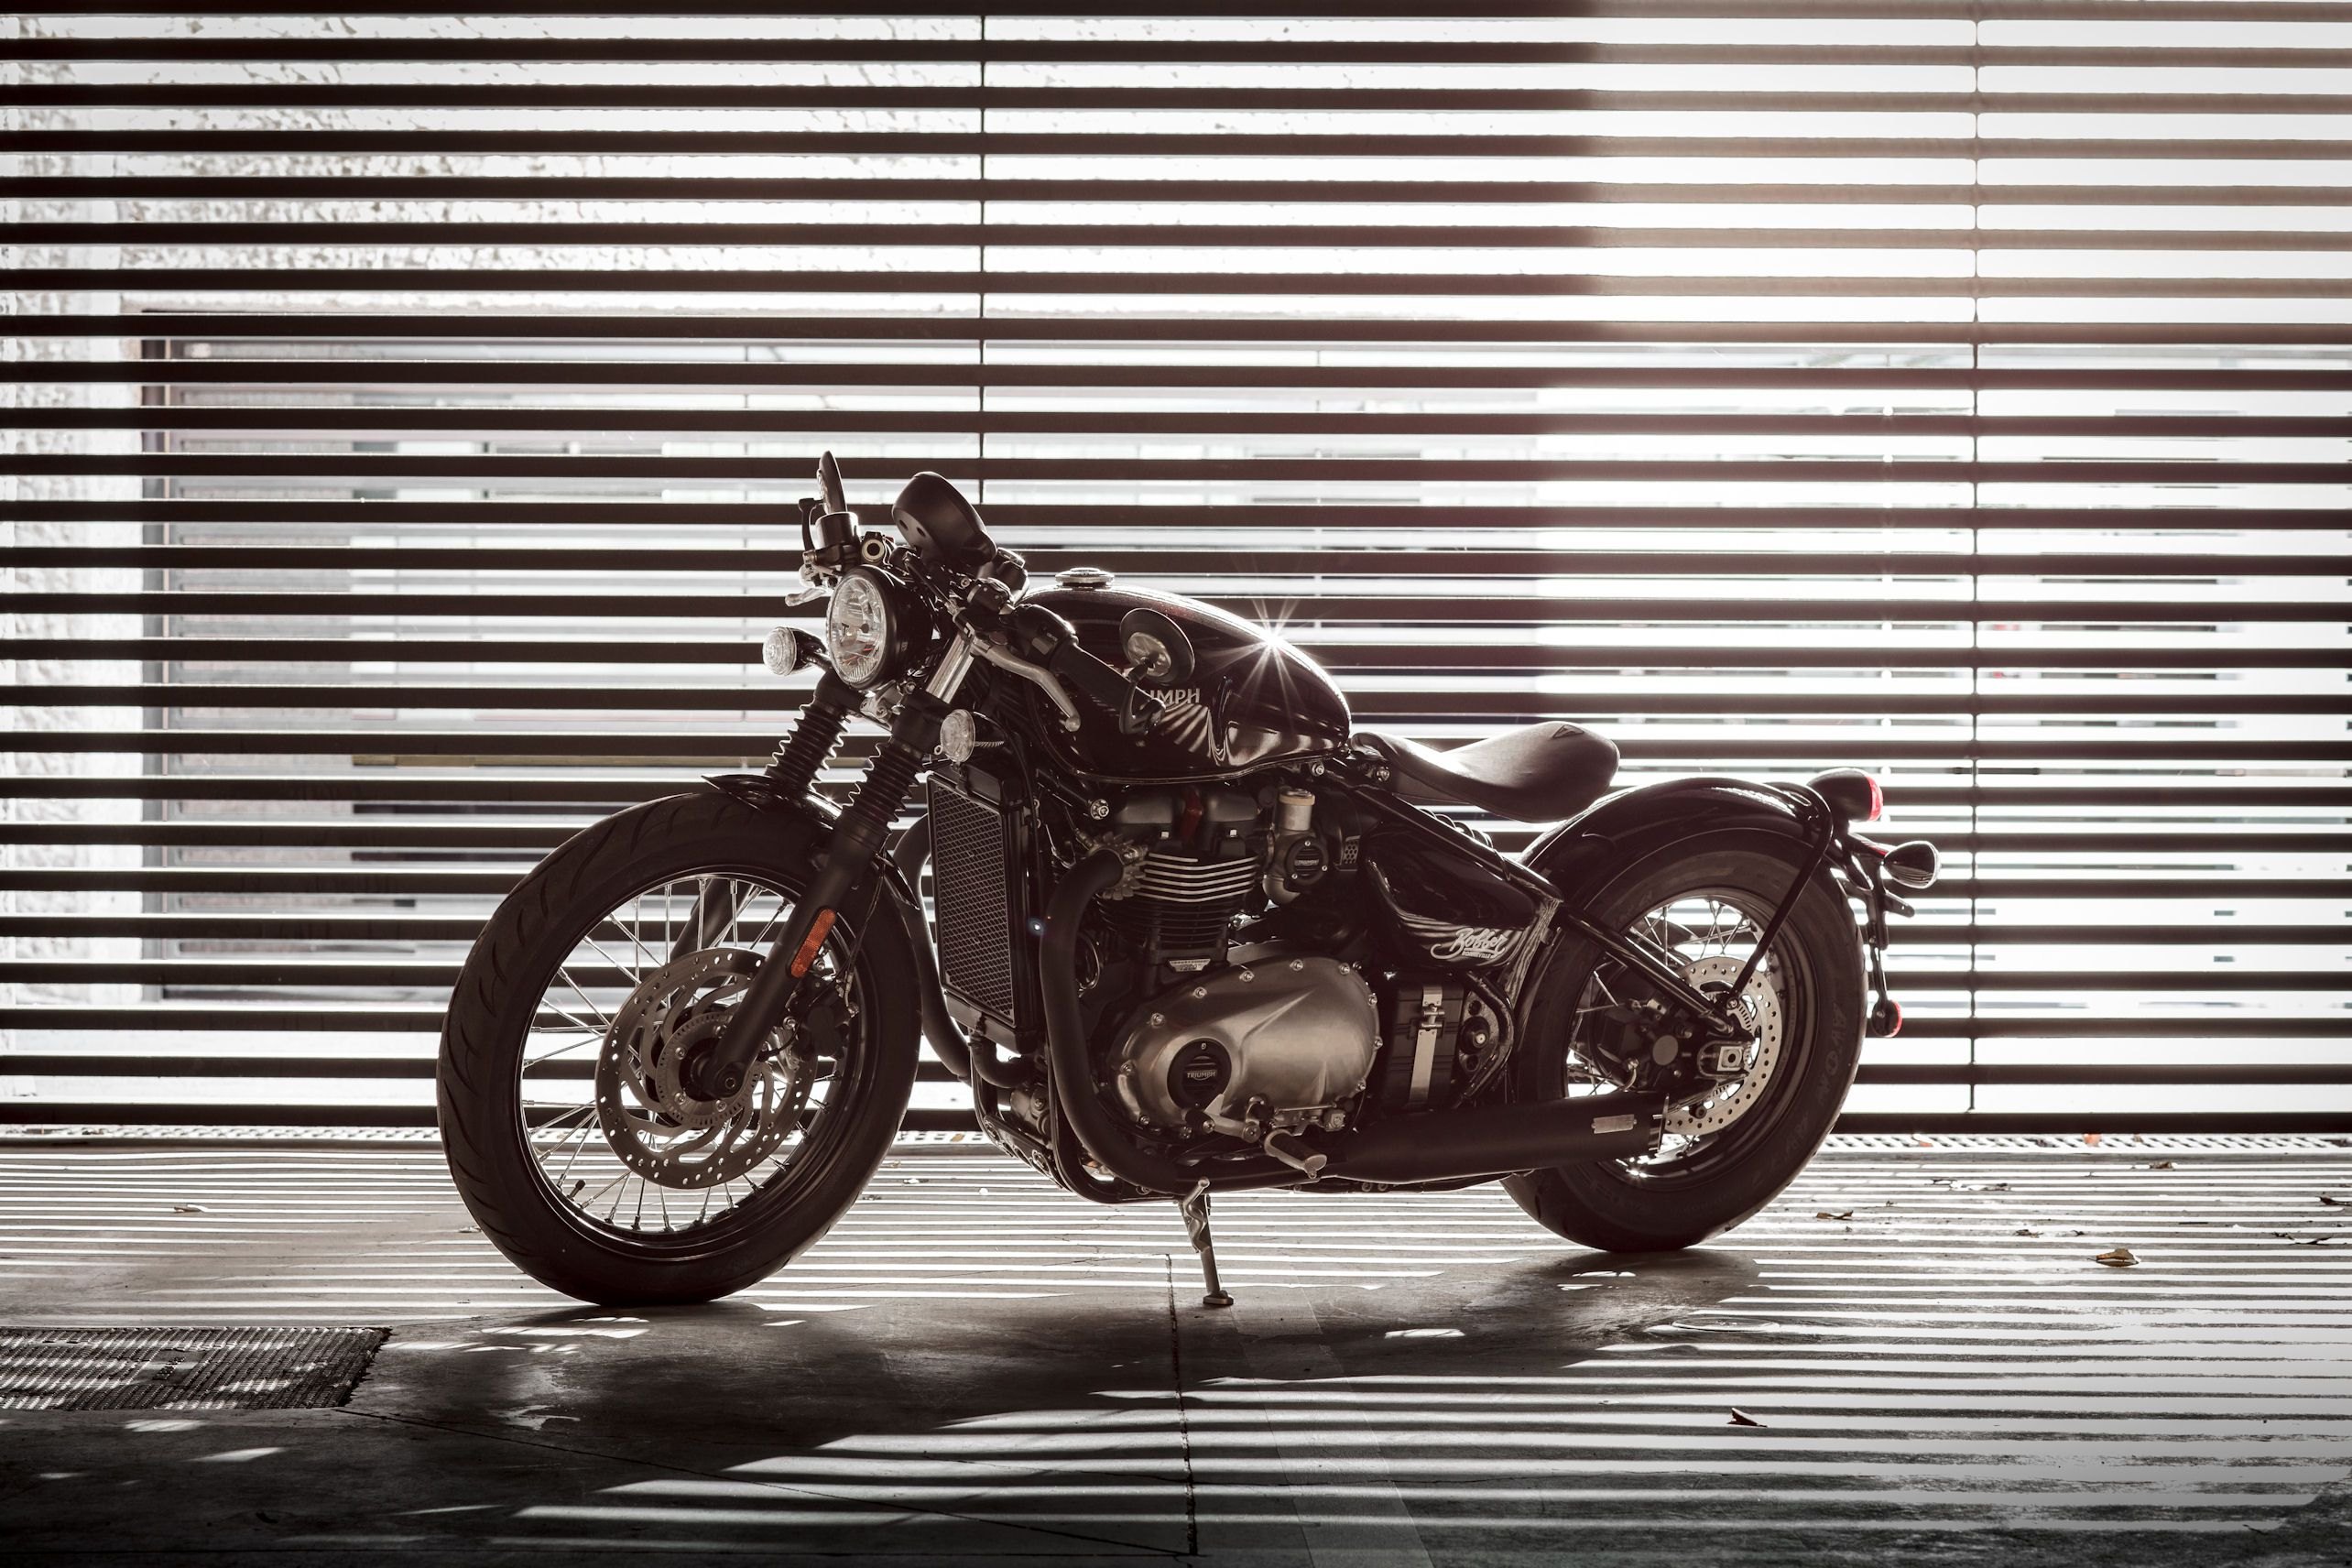 Bonneville Bobber Fitted With A Quarter Mile Inspiration Kit From